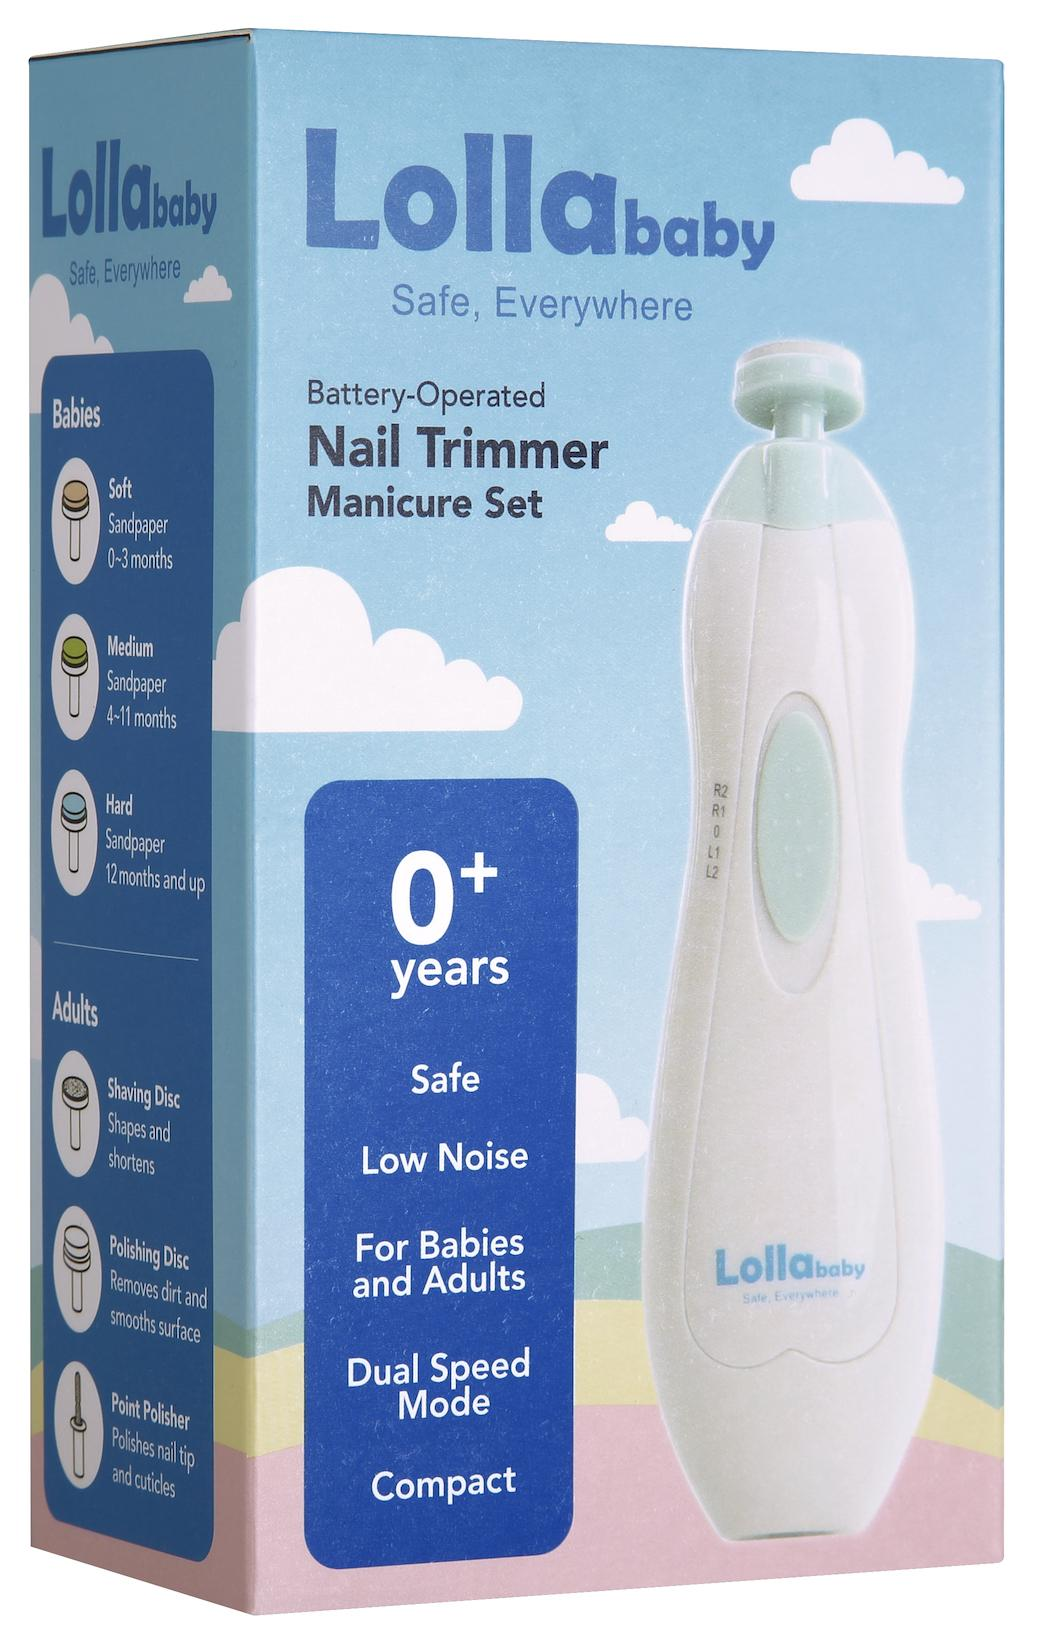 Lollababy Nail Trimmer Manicure Set By Lollababy Singapore.